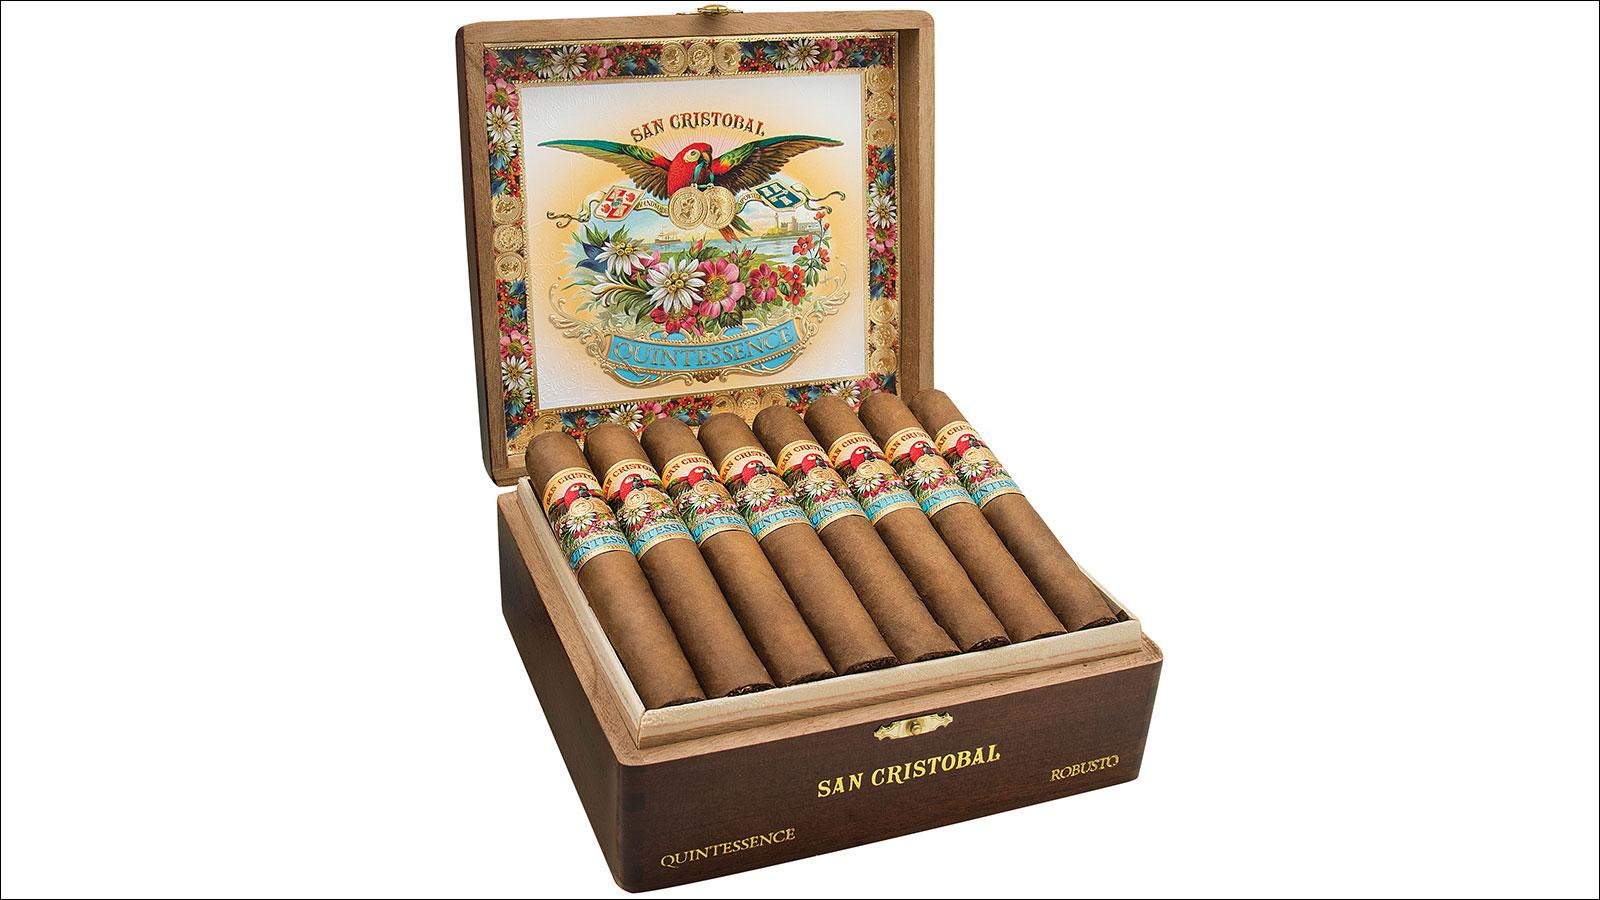 San Cristobal Quintessence Now in Stores Nationwide